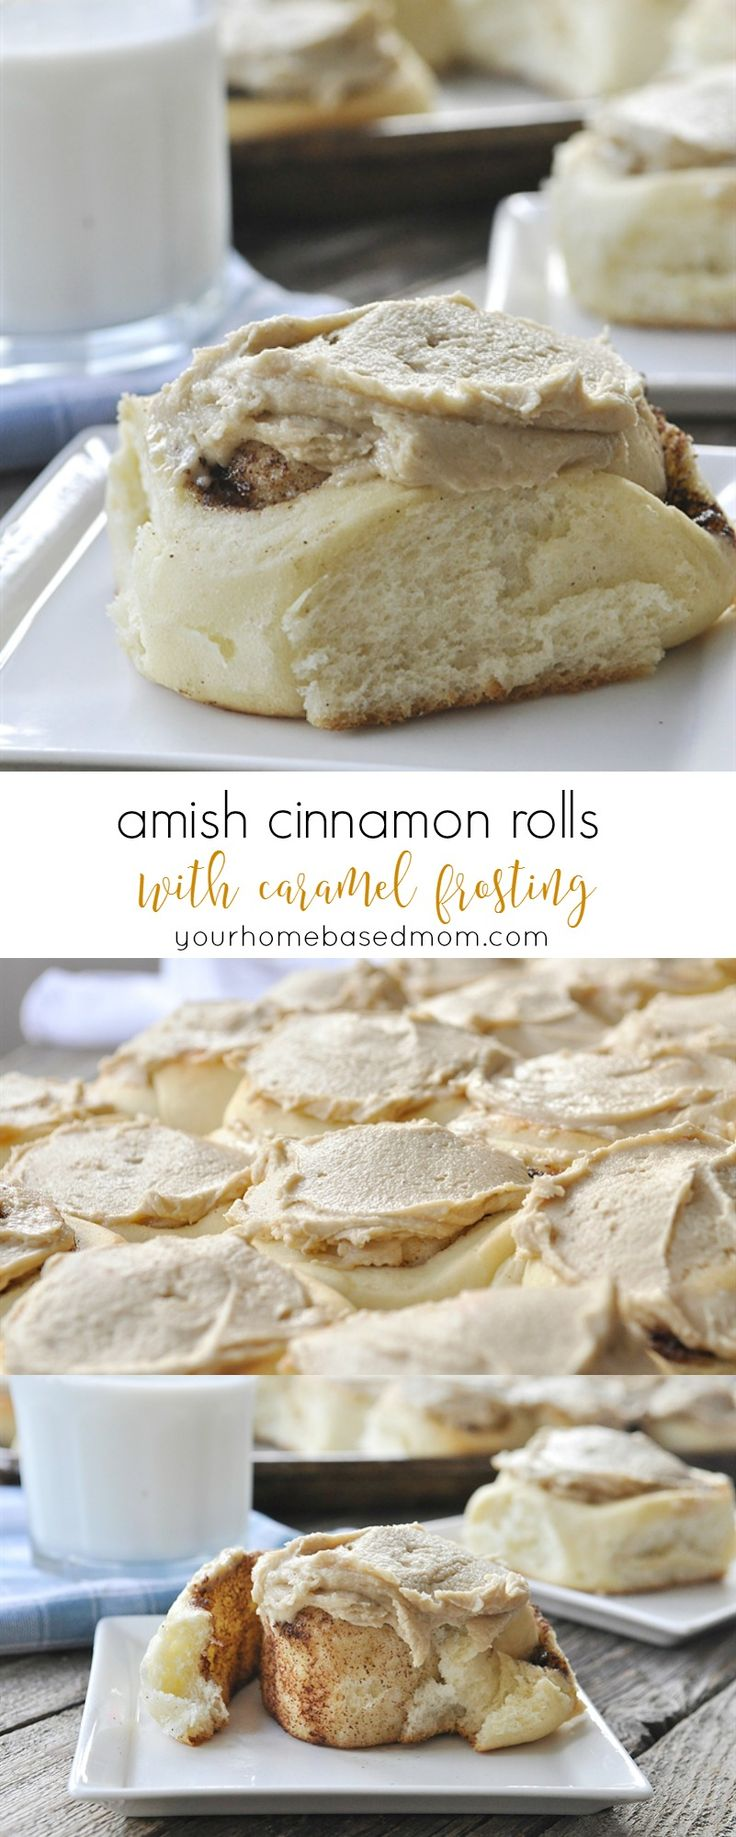 Amish Cinnamon Rolls with Caramel Frosting Recipe - you will love the surprising addition of mashed potatoes in these!